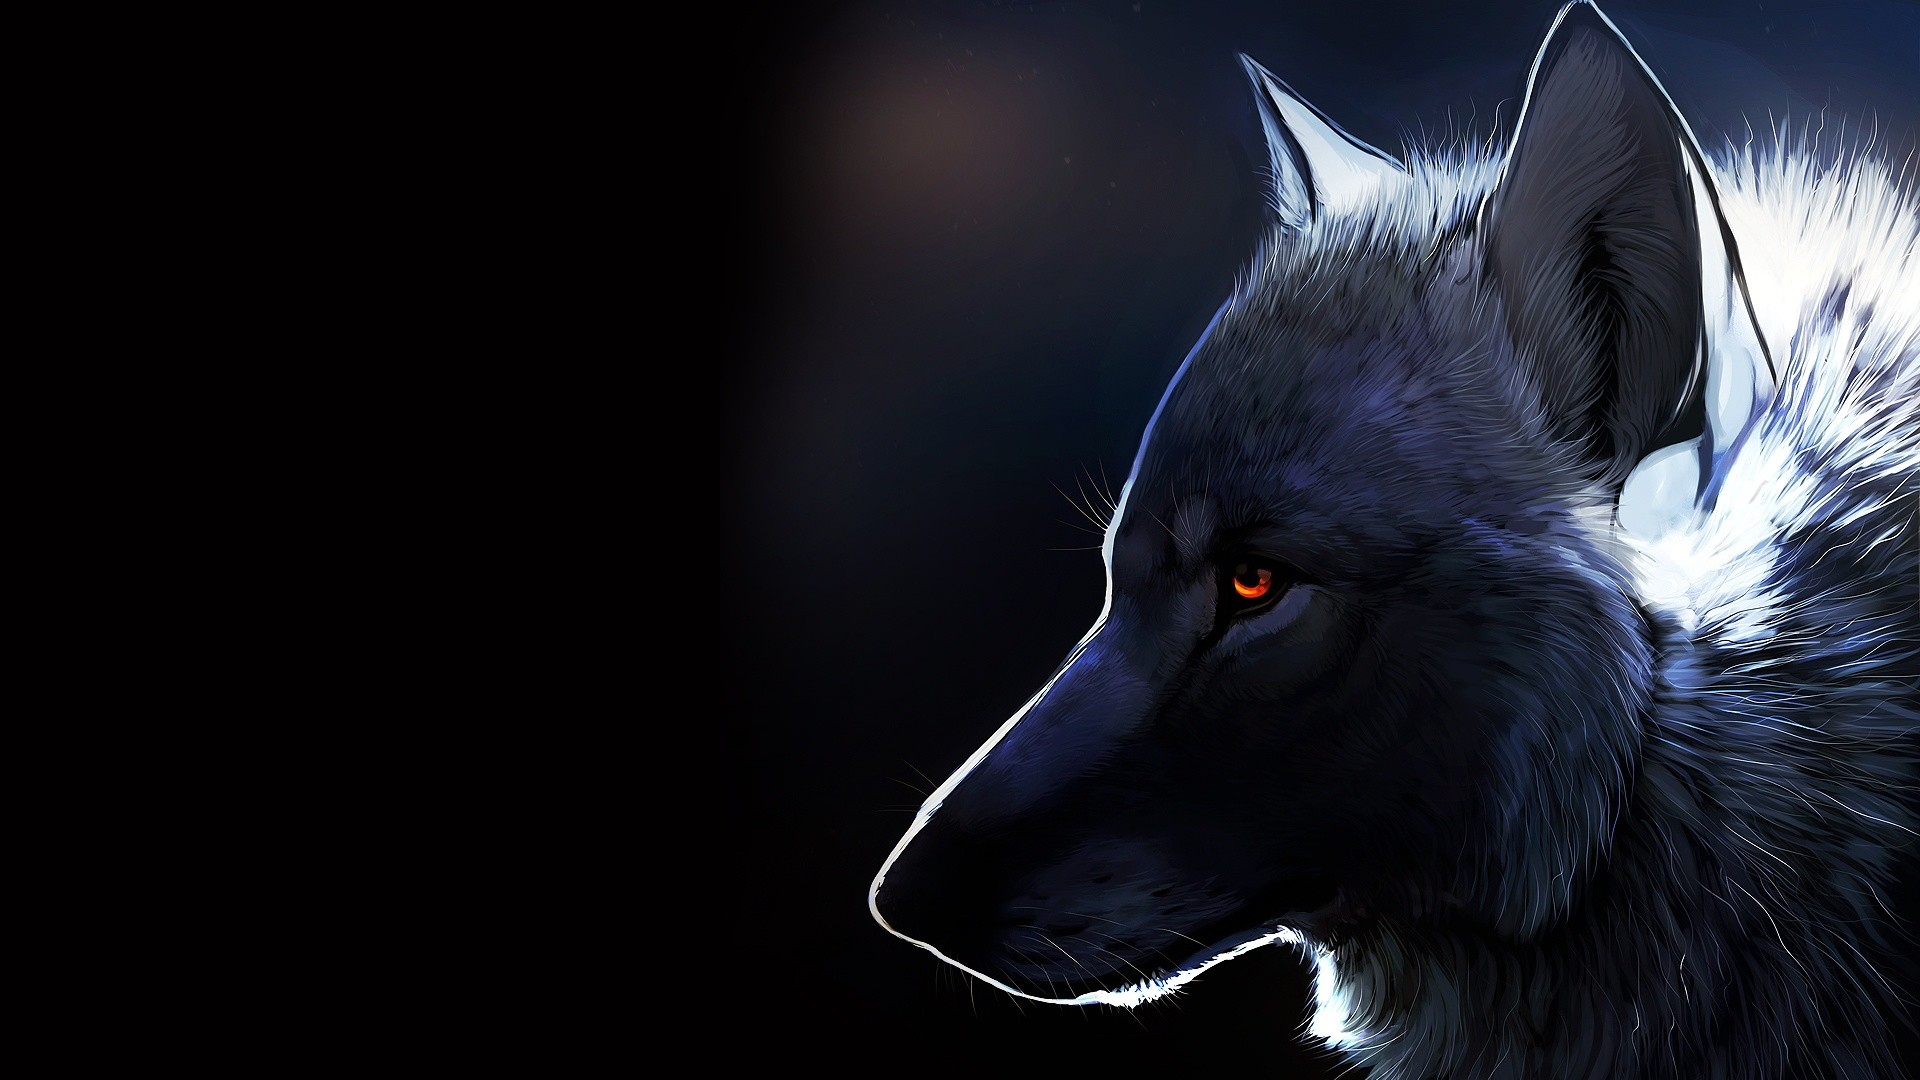 Animated Wolf Wallpapers Group 1920×1080 Animated Wolf Wallpapers |  Adorable Wallpapers